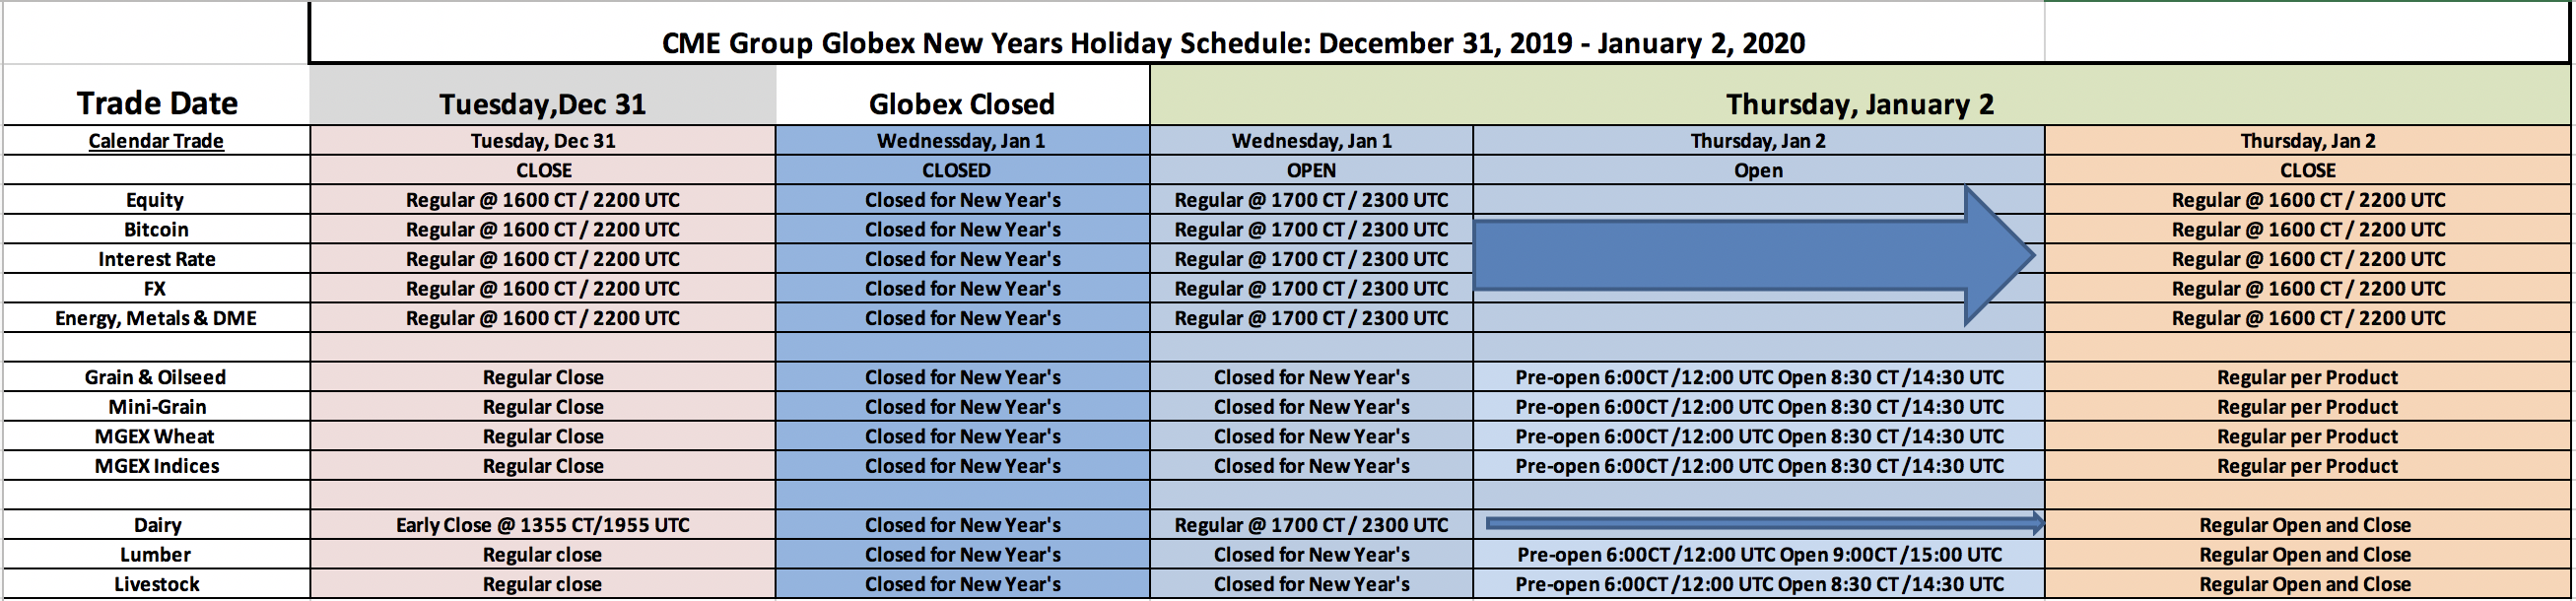 New_Year_-_Holiday_Trading_Schedule_-_CME_-_2019-2020.png